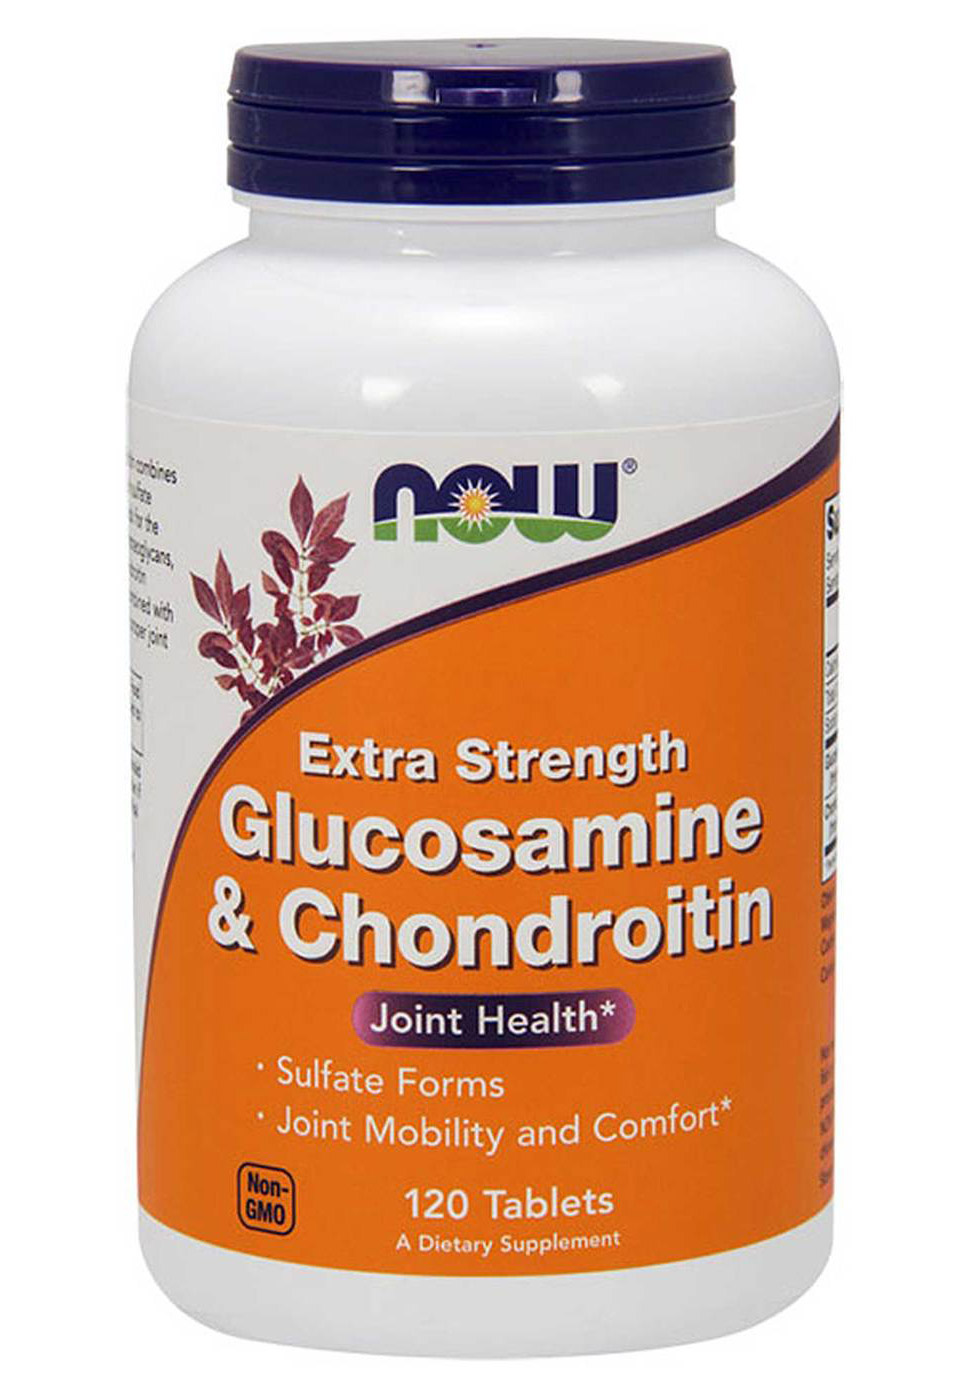 Glucosamine & Chondroitin Sulfate Extra Strength NOW (120 ta